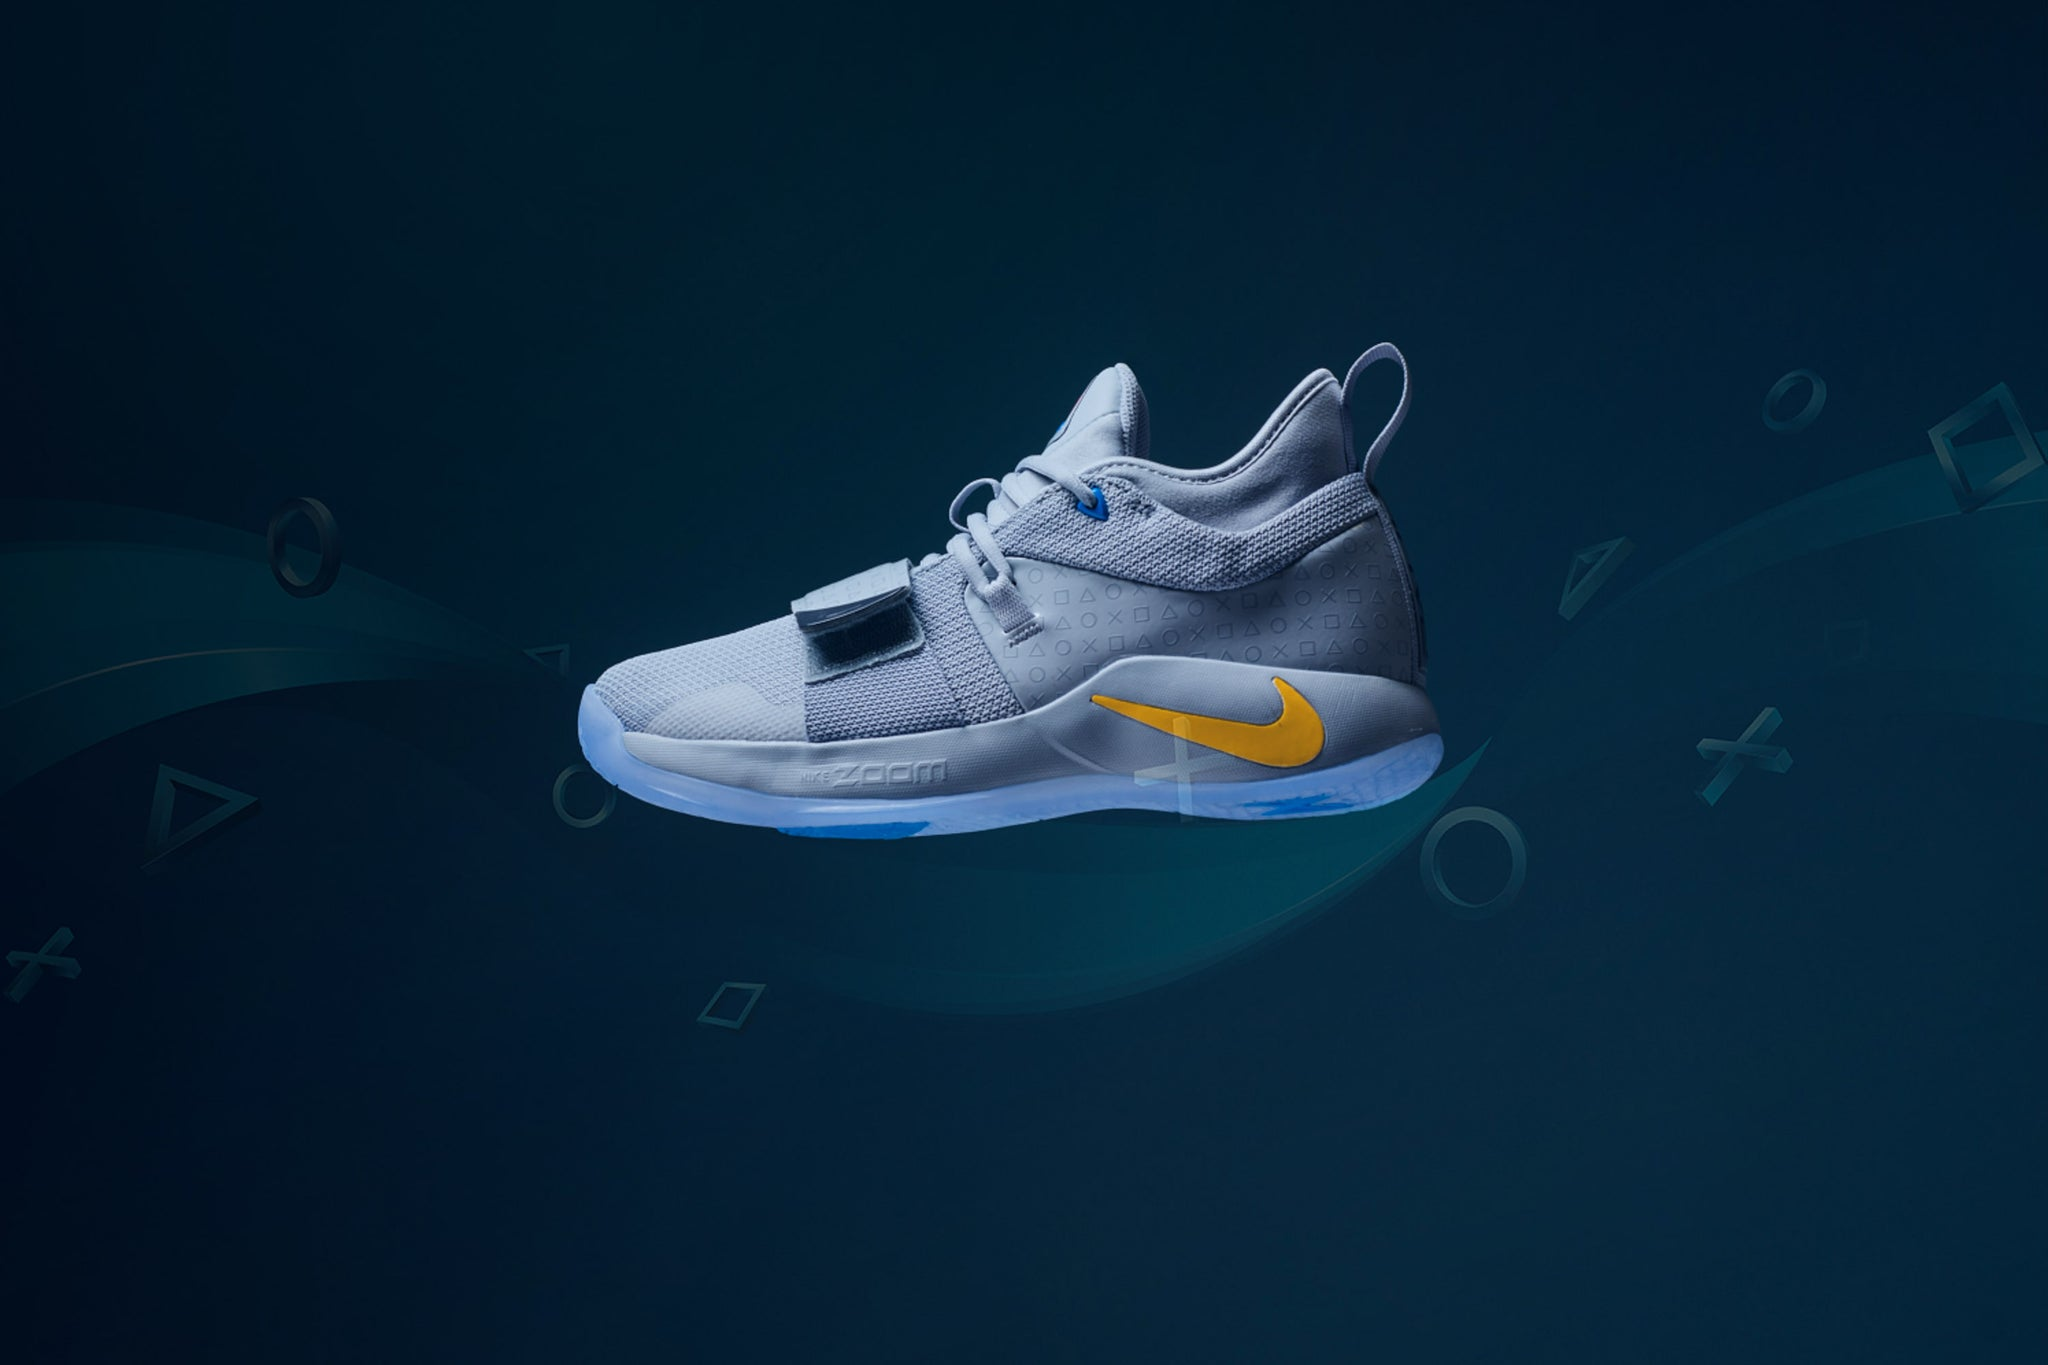 low priced 0a9b2 7d489 Nike PG 2.5 x PLAYSTATION - Sneaker Politics